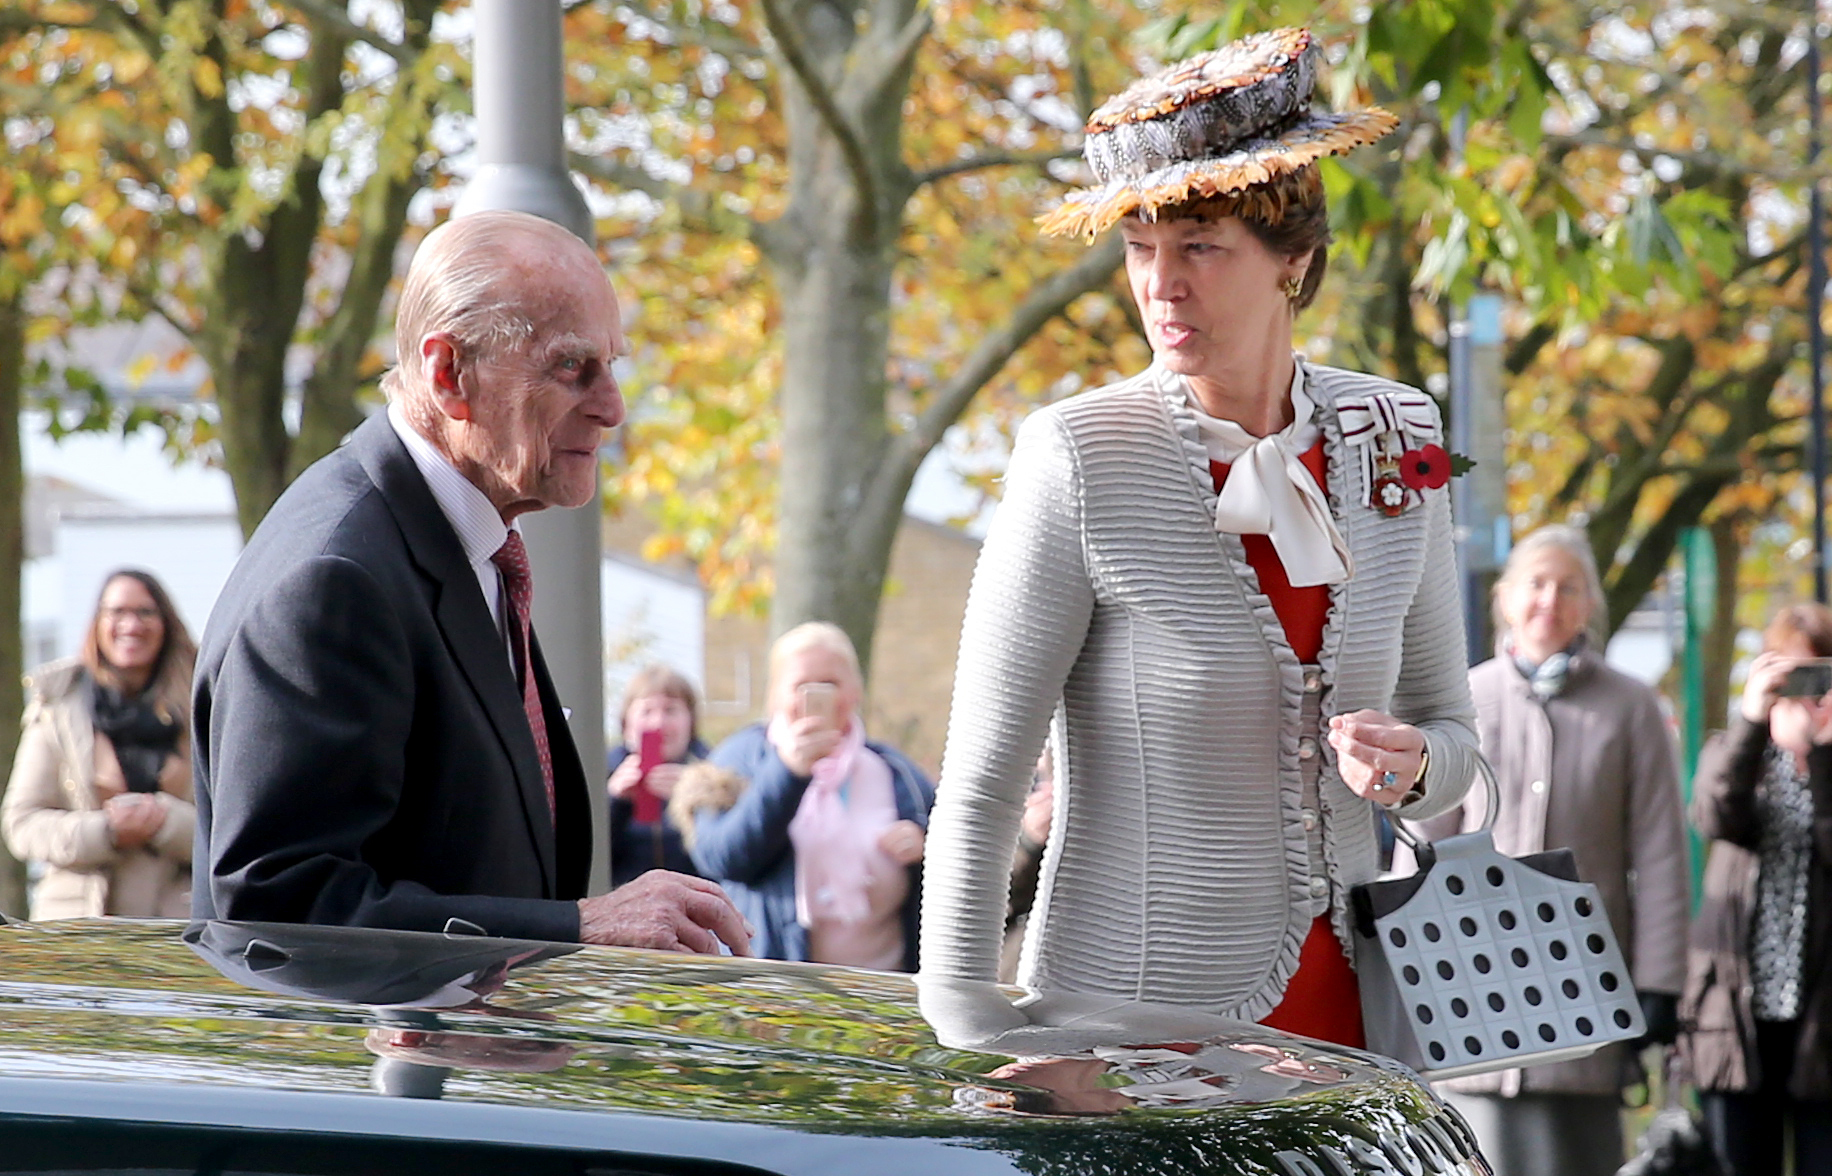 Prince Philips visit to the University of Hertfordshire in 2016